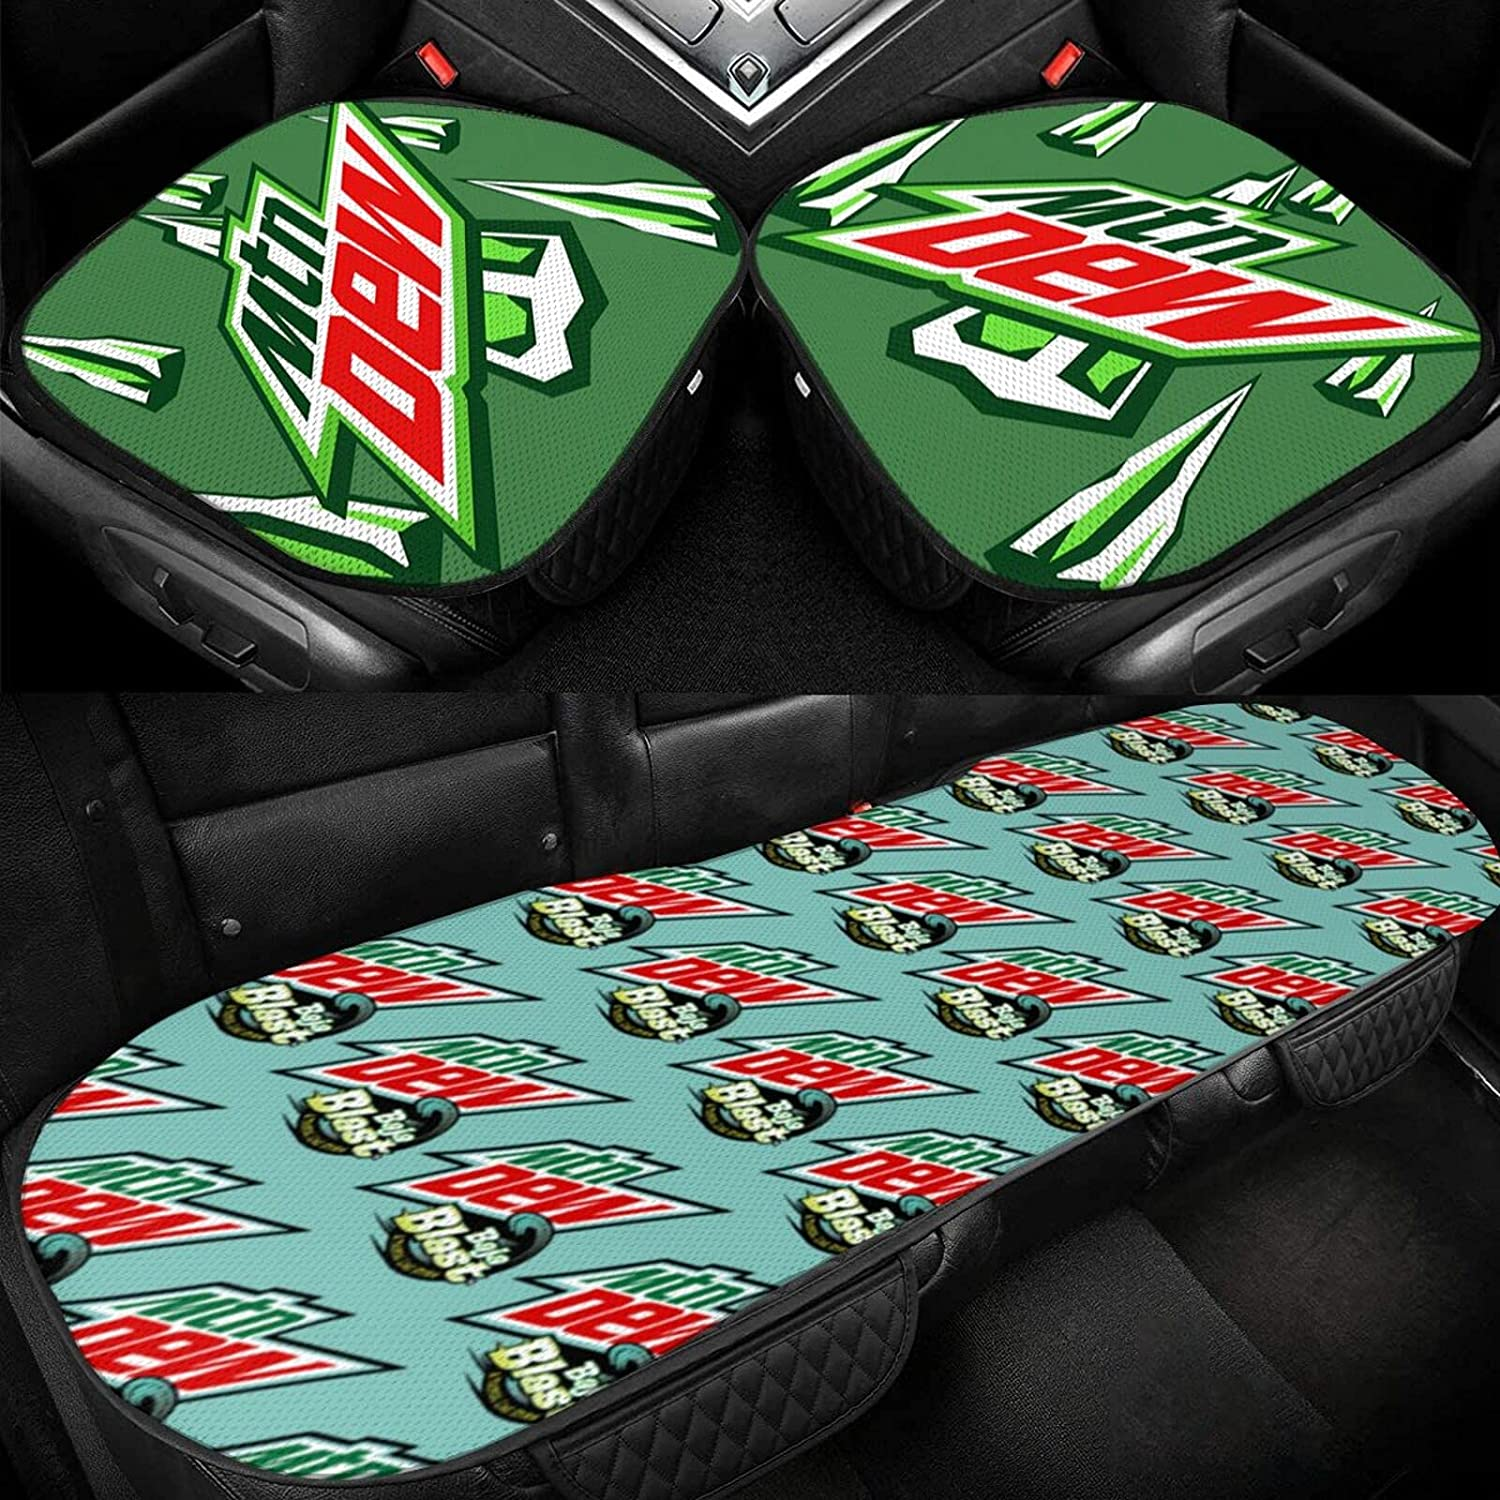 M-ountain Dew Three-Piece Set of Car Manufacturer regenerated product Cushion 3D Ice Three-D Silk Popular shop is the lowest price challenge